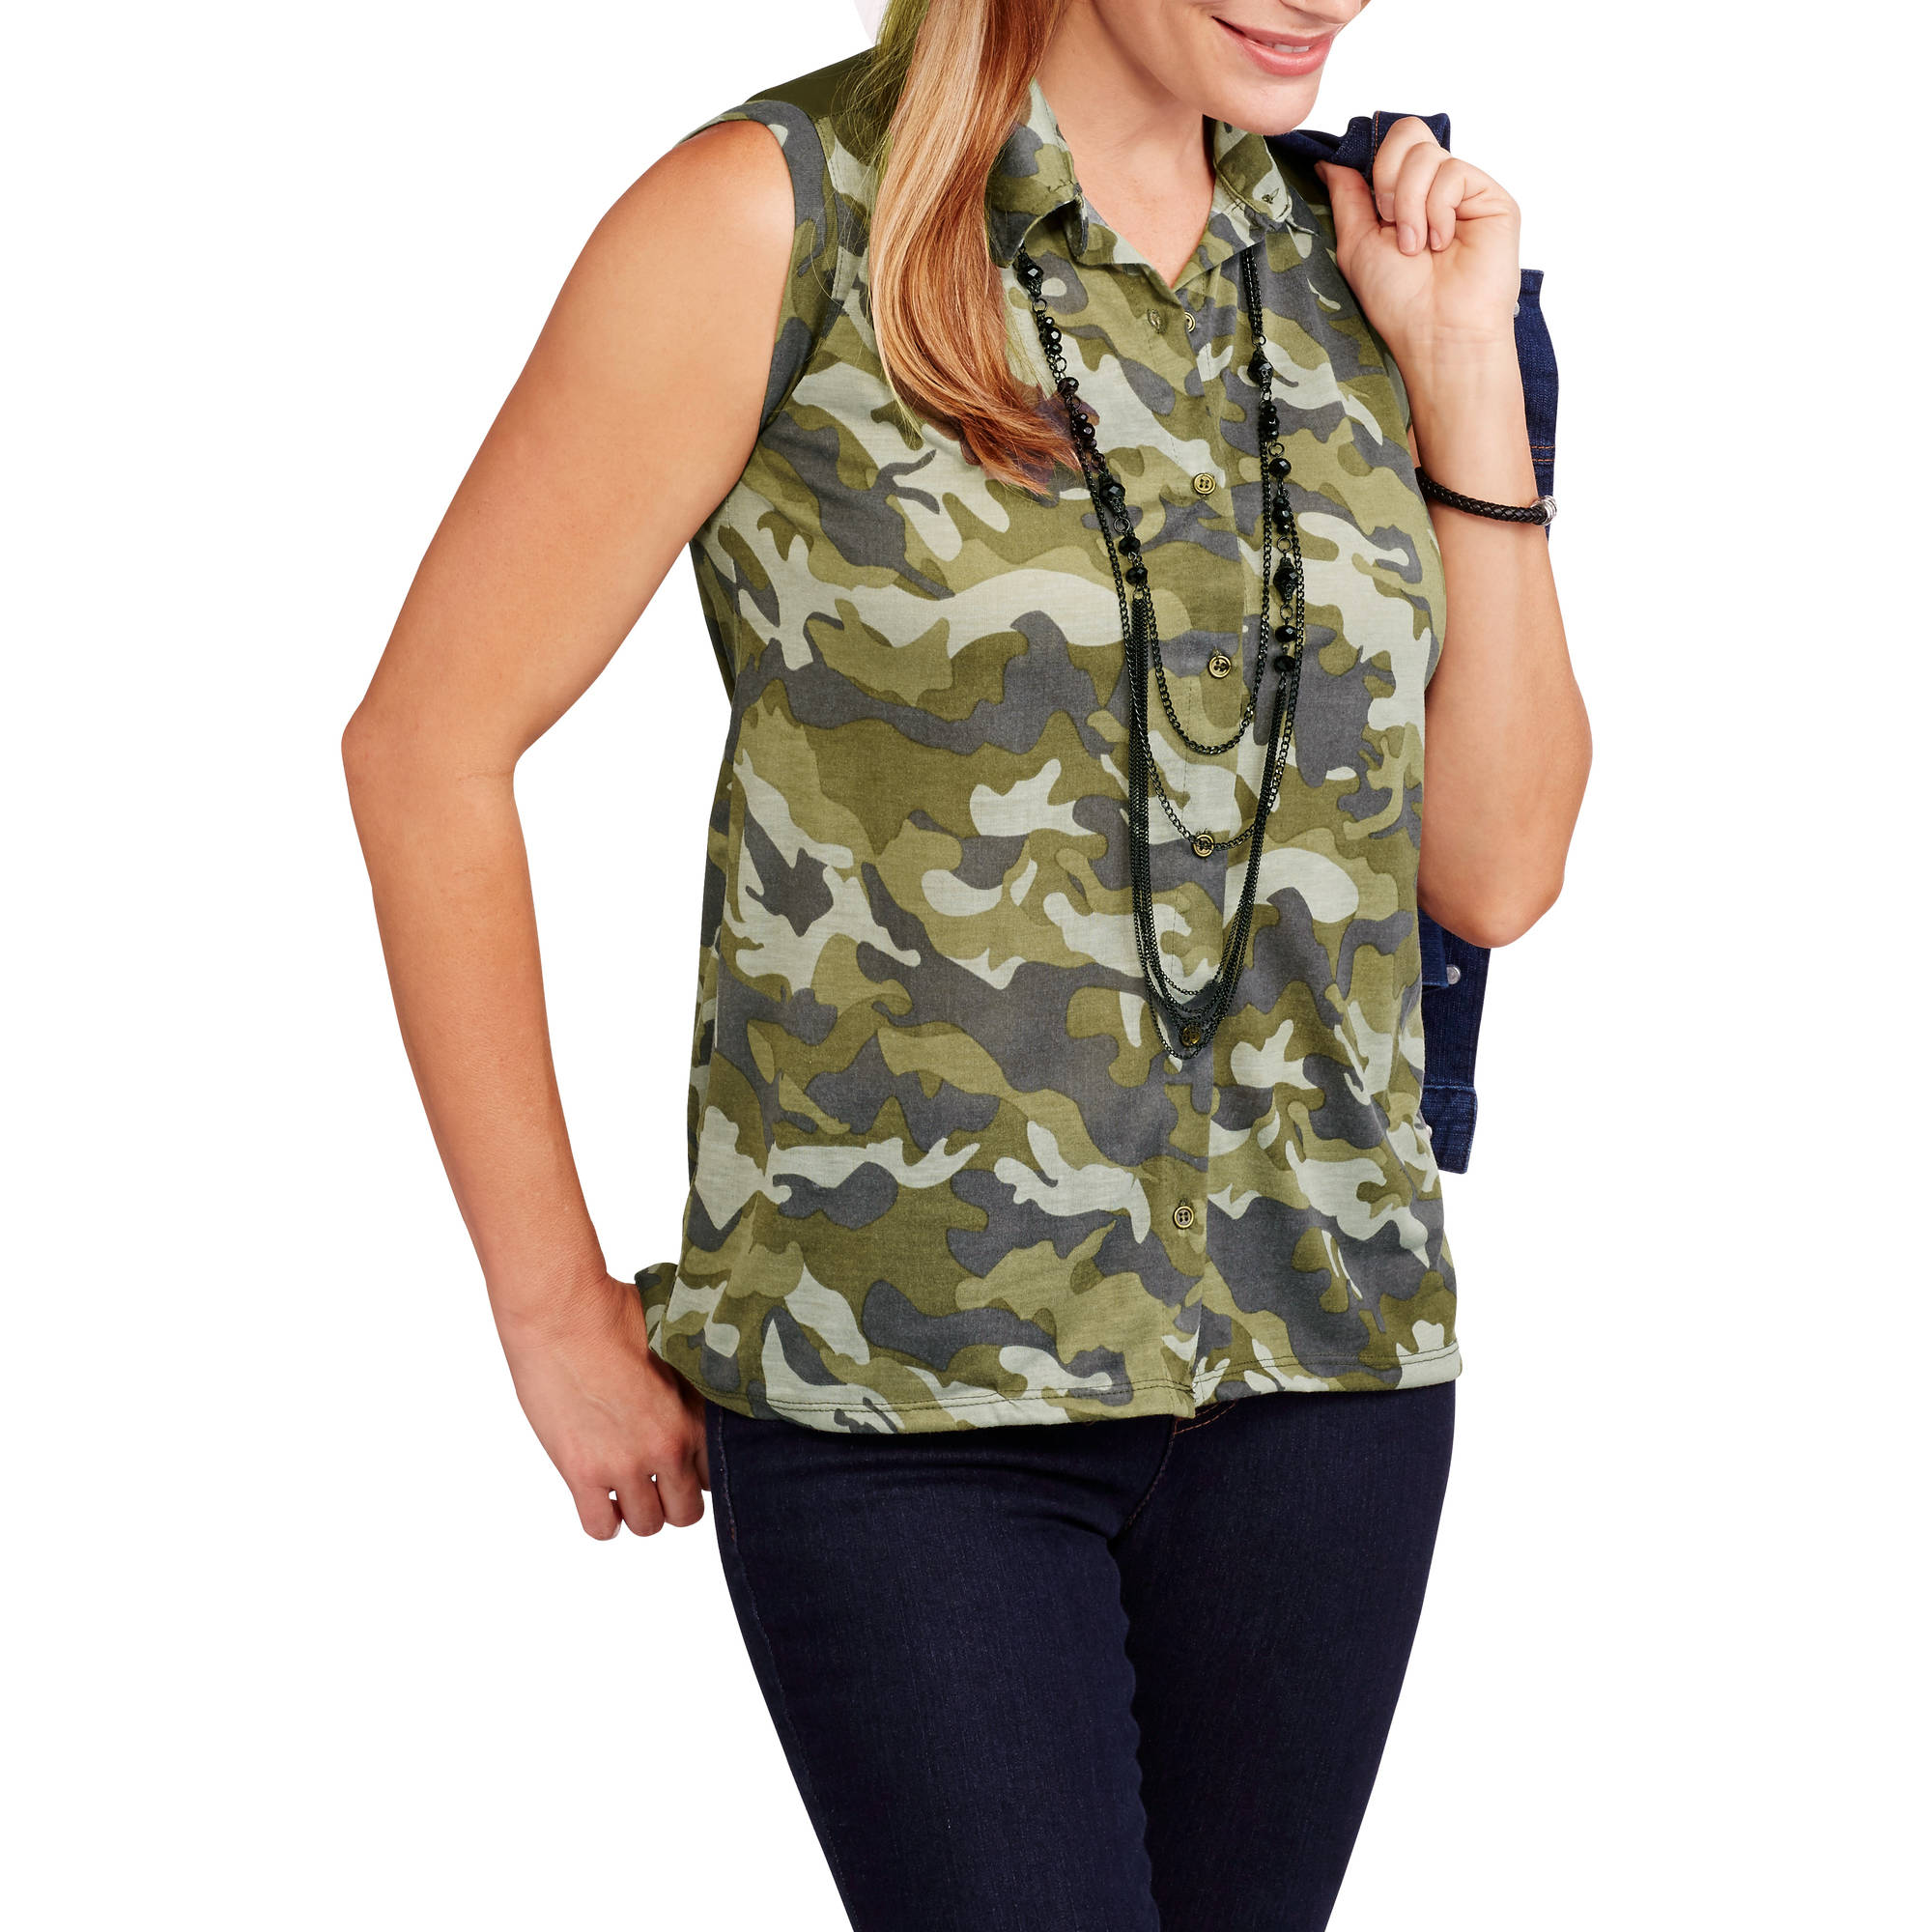 Women's Soft Knit Camo Sleeveless Button-Front Top